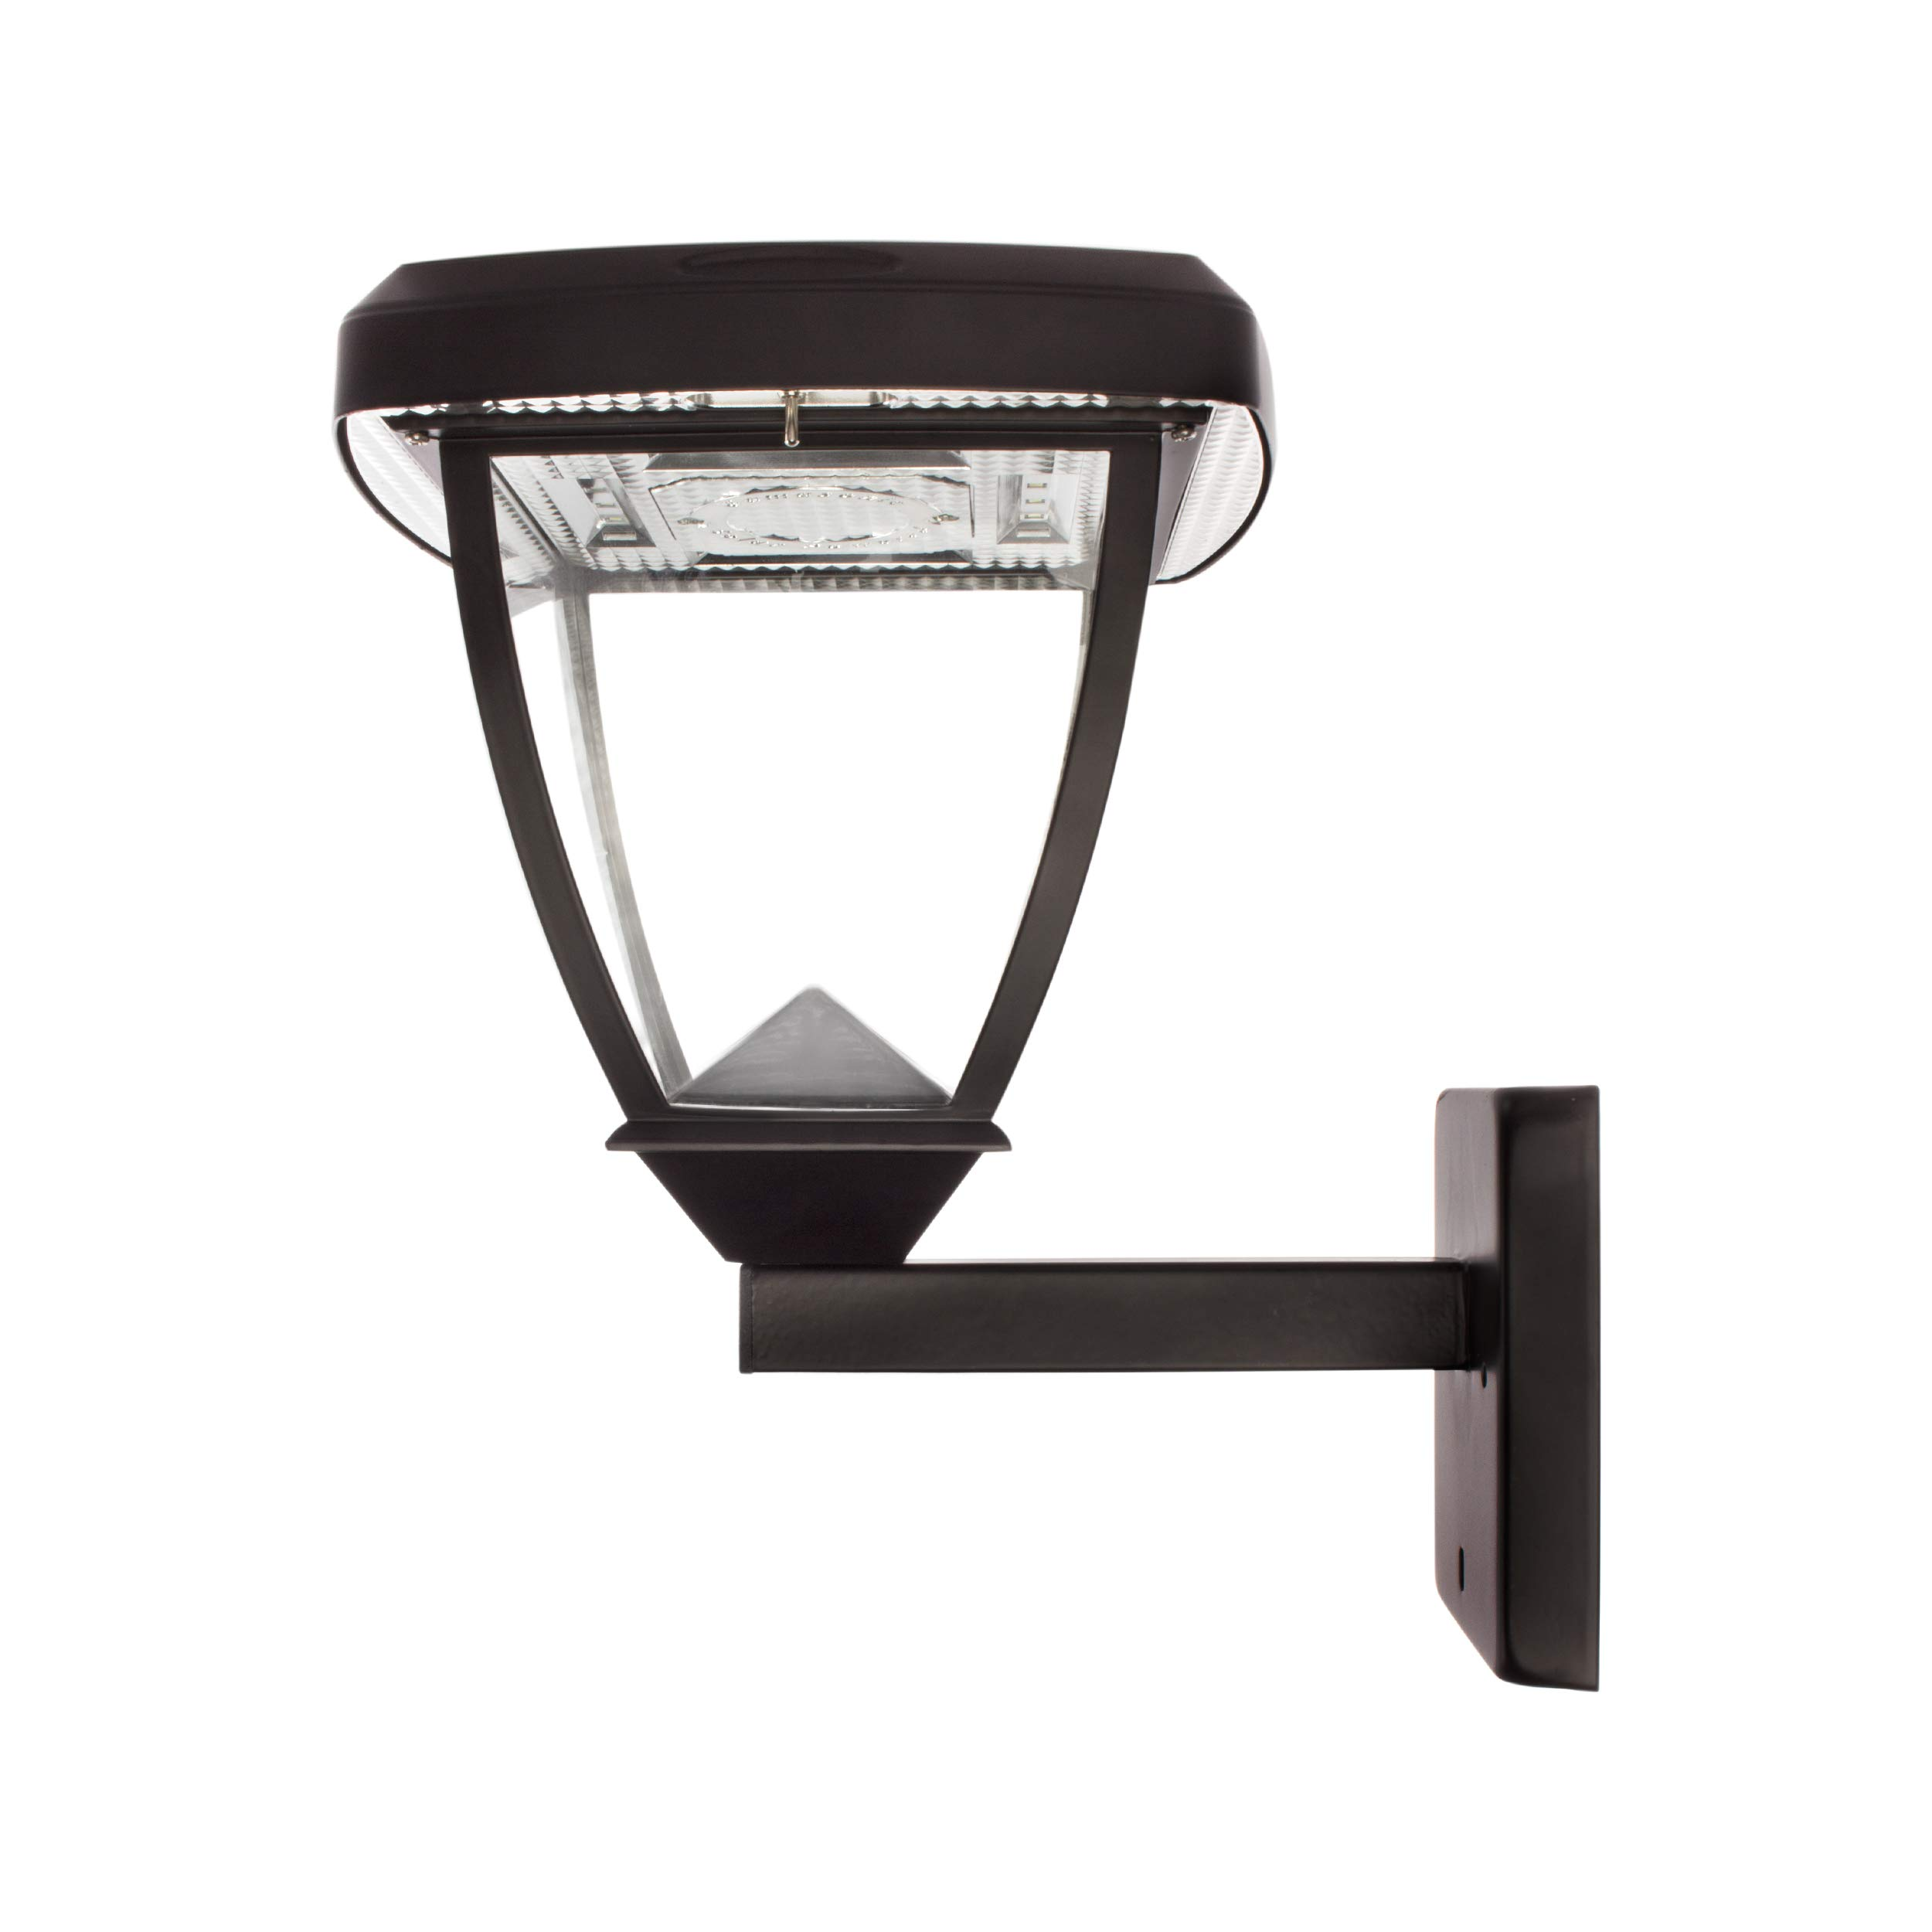 Solar Basics SBG2-118FPW Inversee Solar Light Fixture, 3'' Mounts for Pole Pier Wall, 2-Pack, Black, 2 Count by Solar Basics